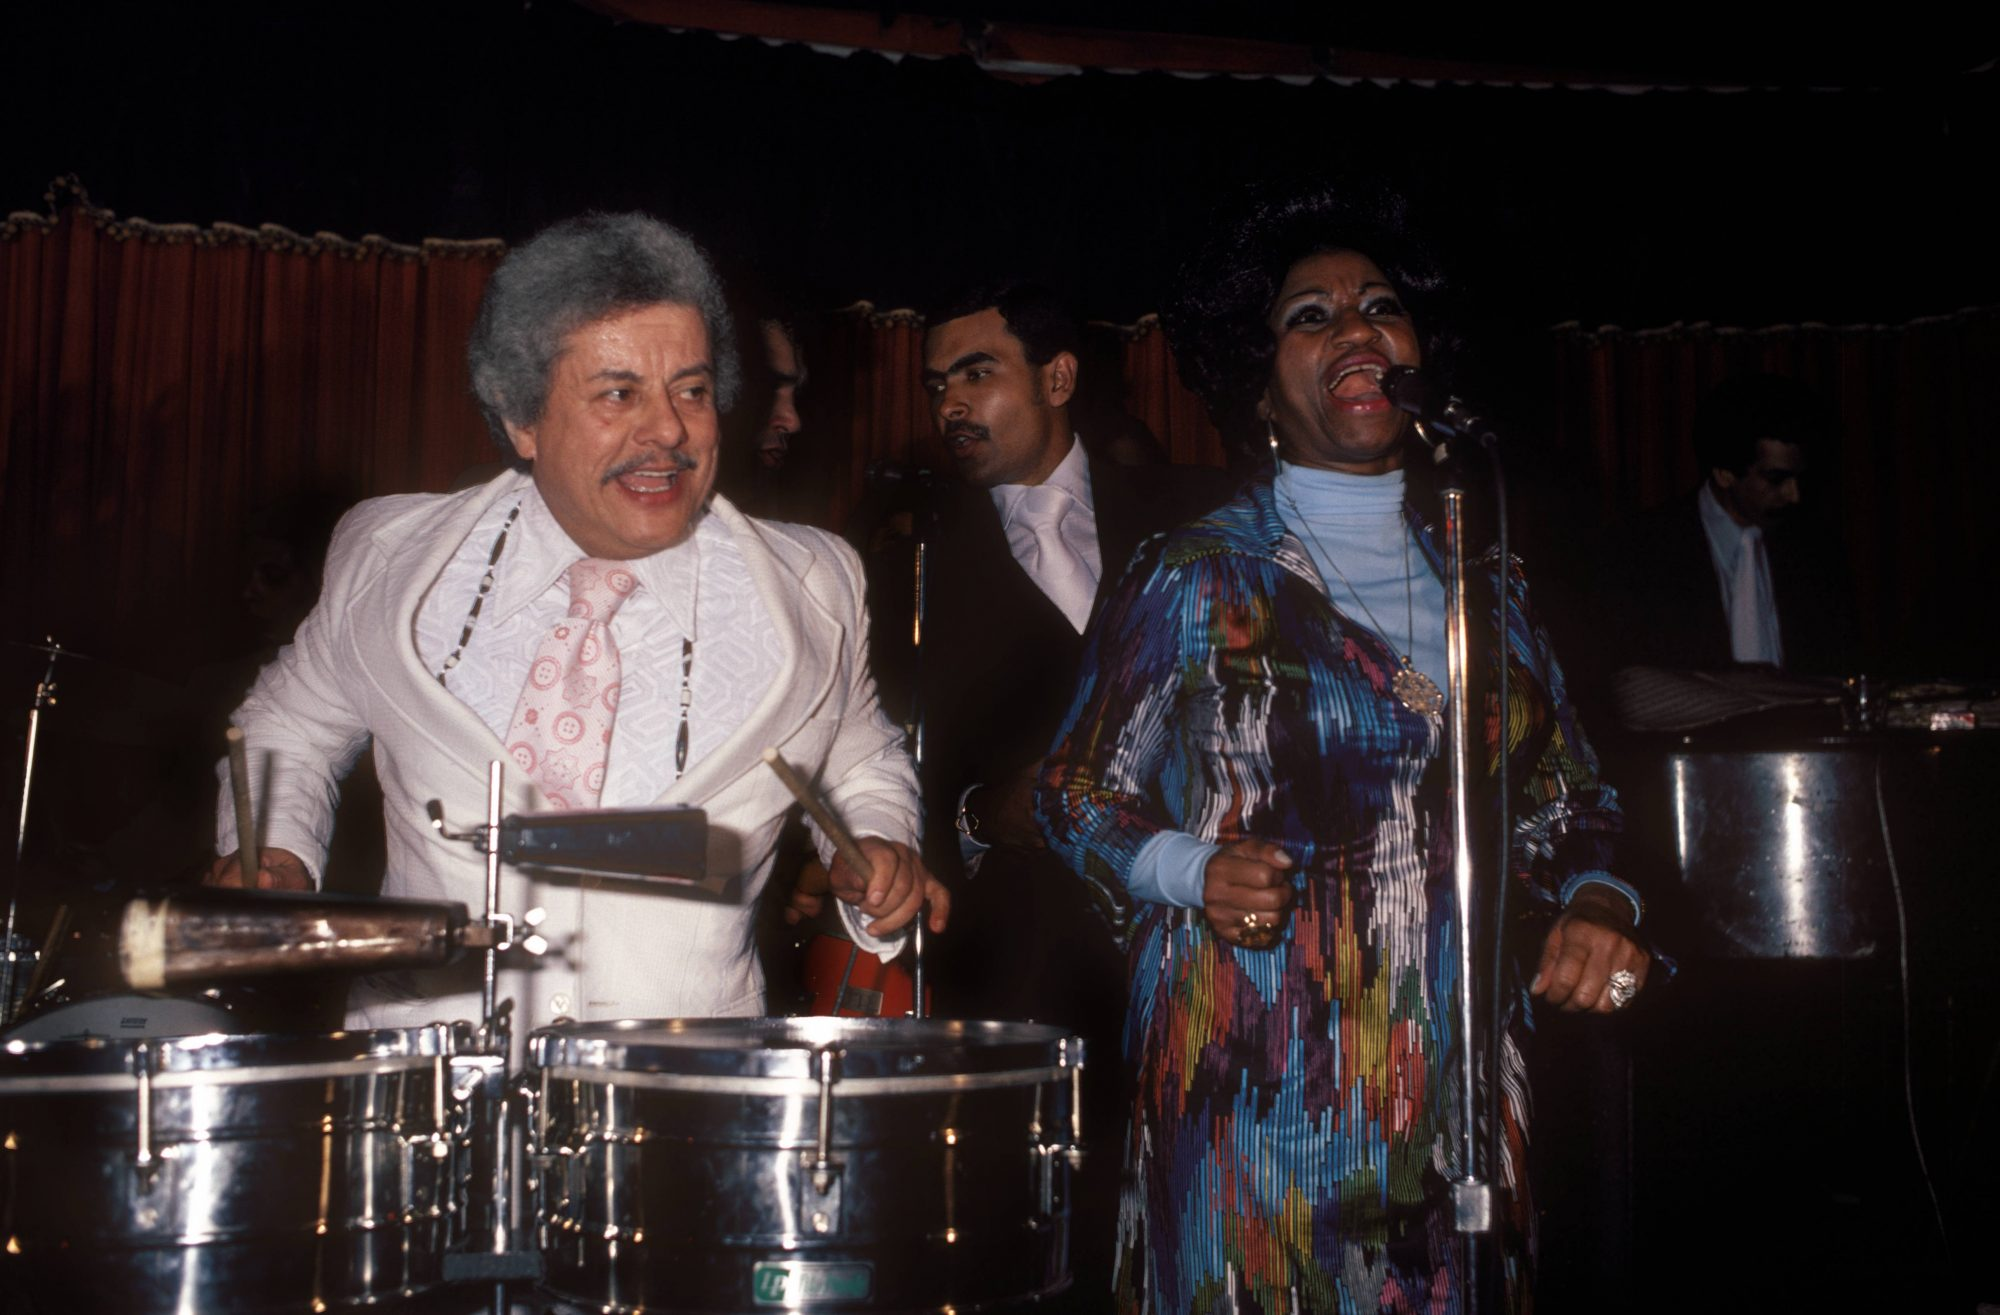 Photo of Celia CRUZ and Tito PUENTE